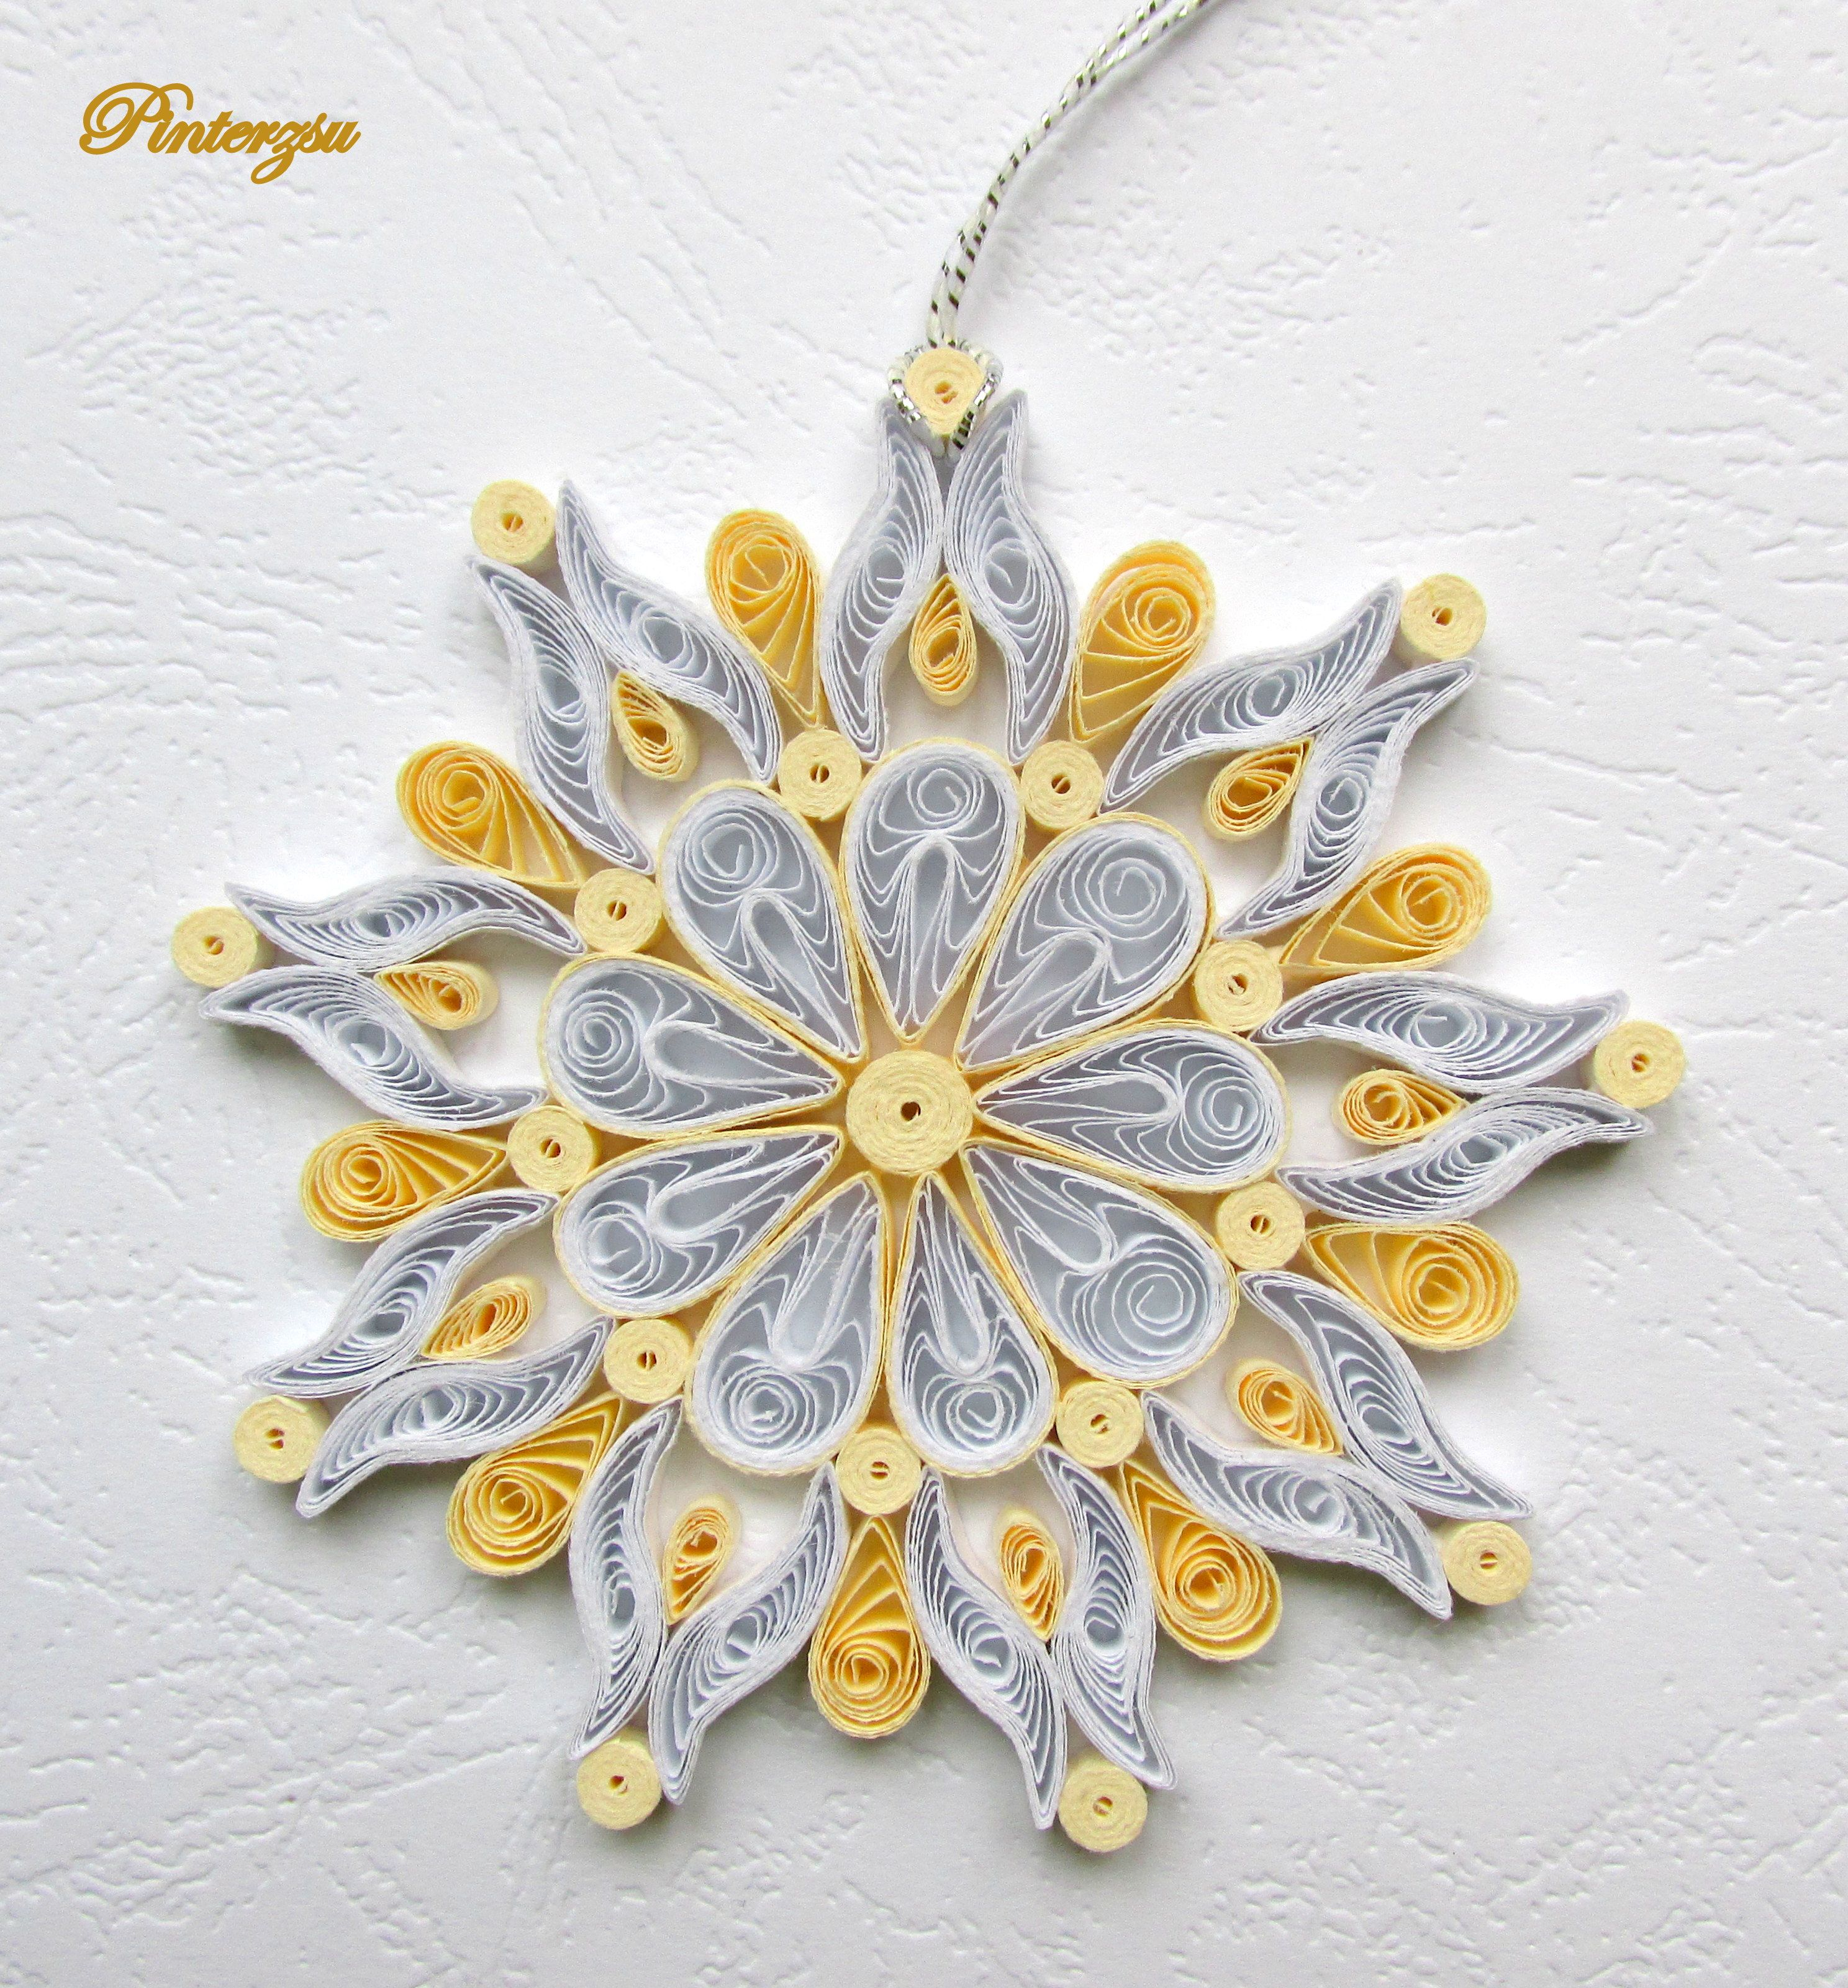 Goldwhite Snowflake Quilled By Pinterzsu Diy Christmas Craftsquilling